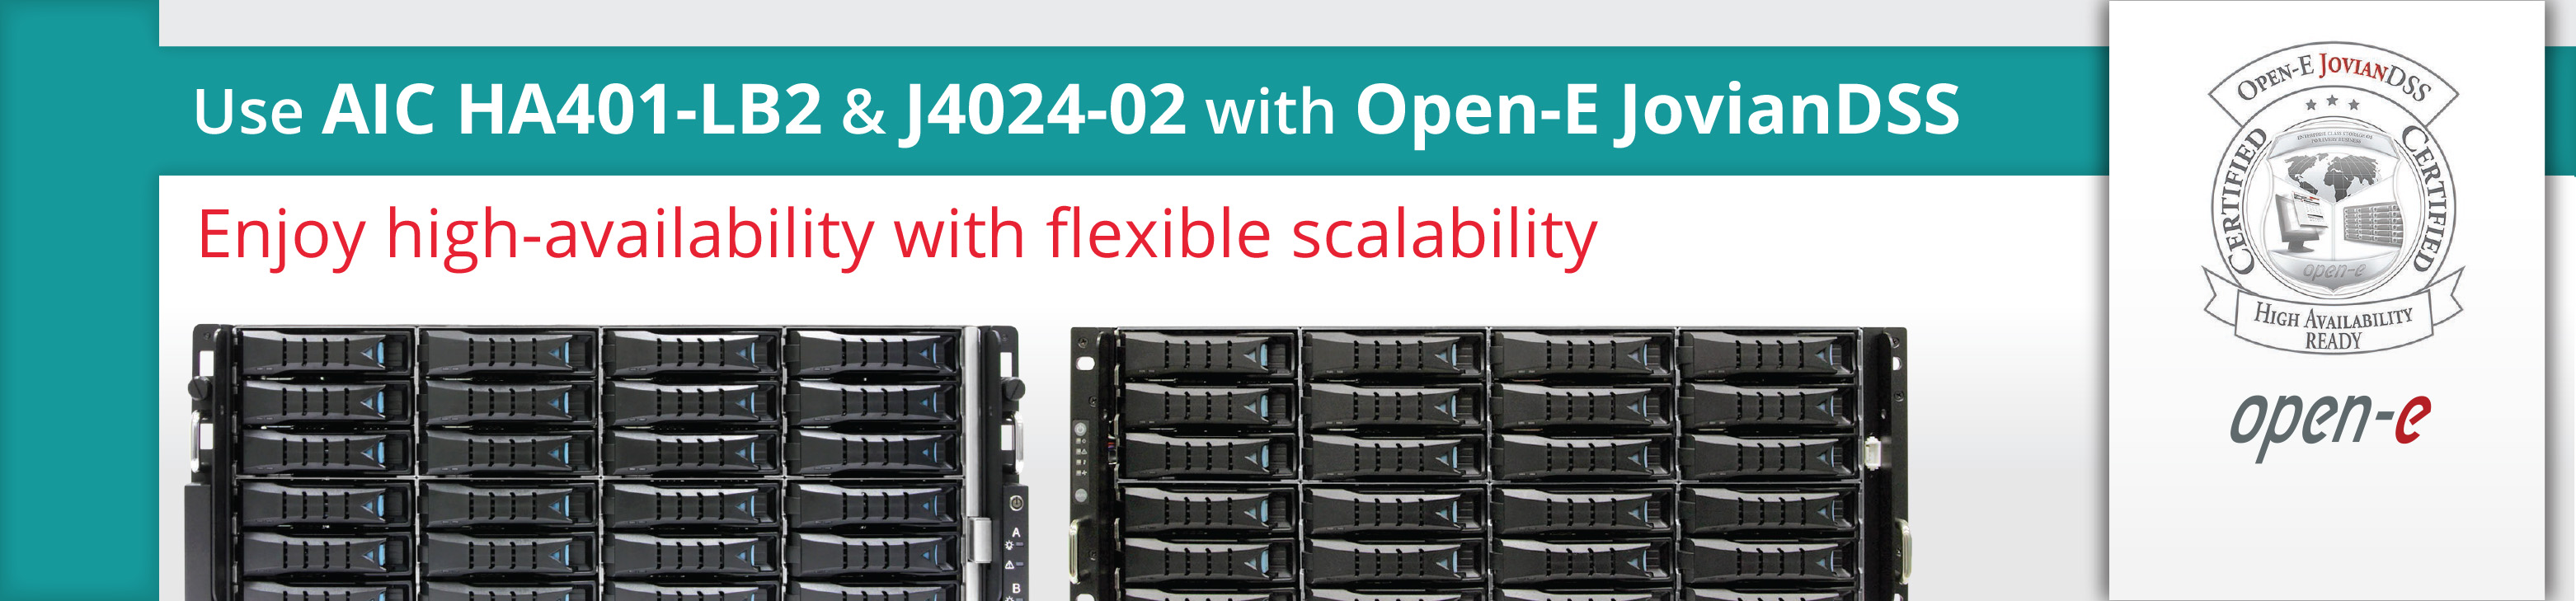 Aic Announces Certification By Open E Of Its High Availability